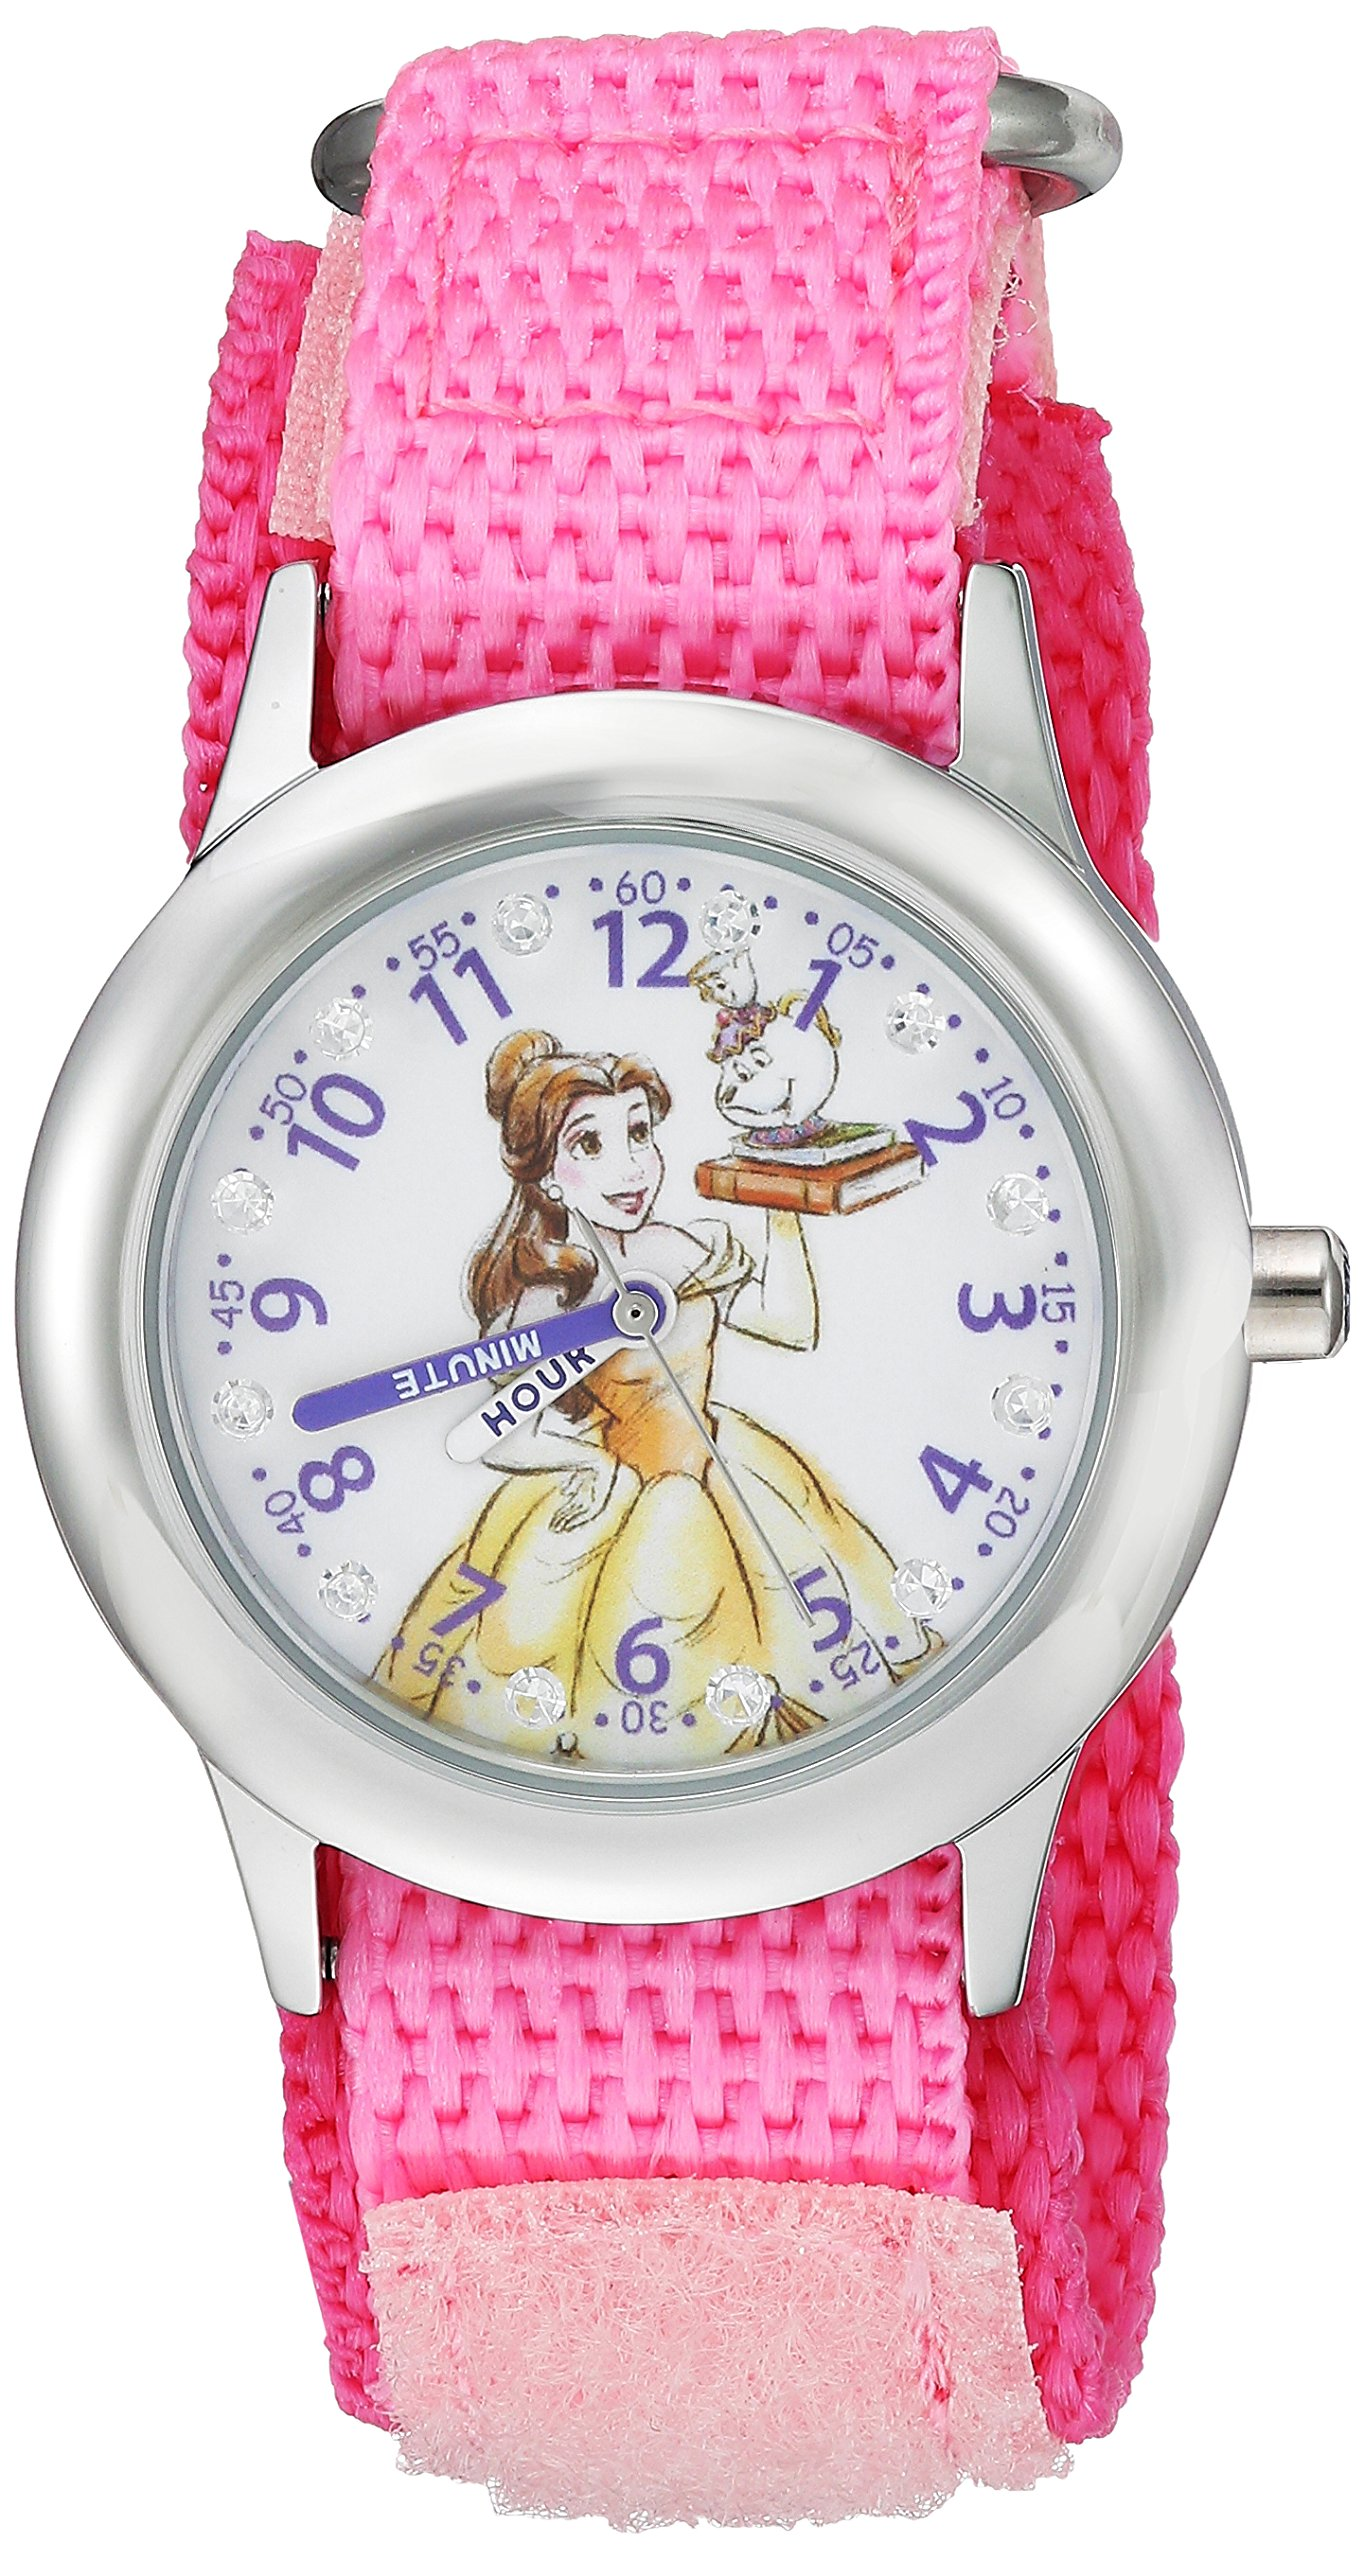 DISNEY Girls Princess Belle Stainless Steel Analog-Quartz Watch with Nylon Strap, Pink, 16 (Model: WDS000187) by Disney